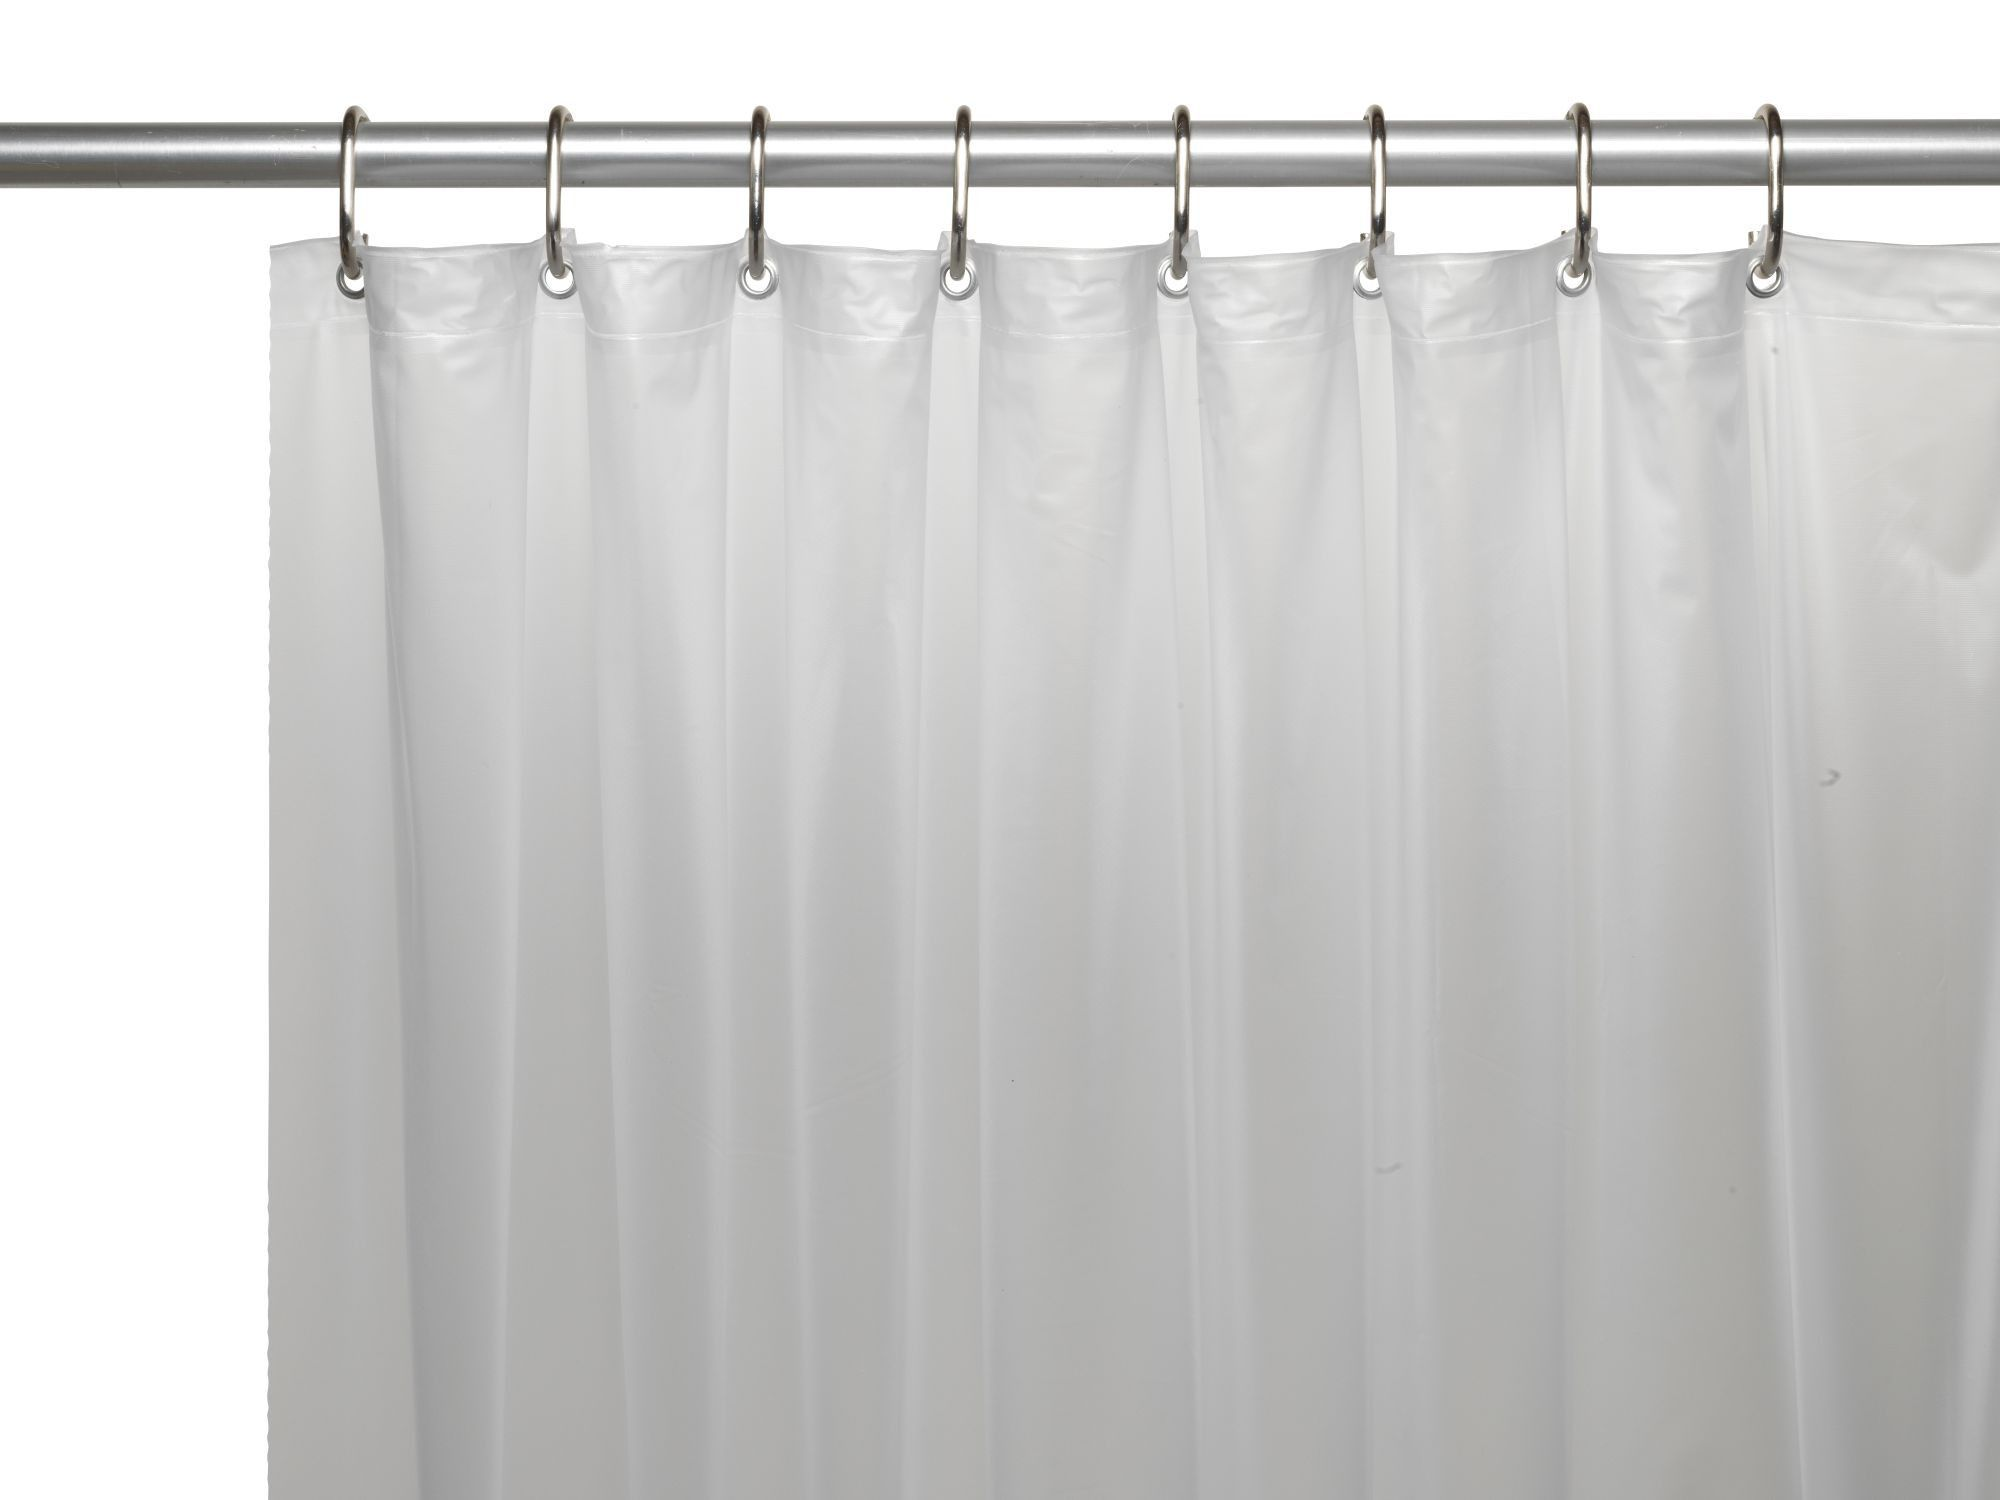 Royal bath extra heavy gauge vinyl shower curtain liner with metal